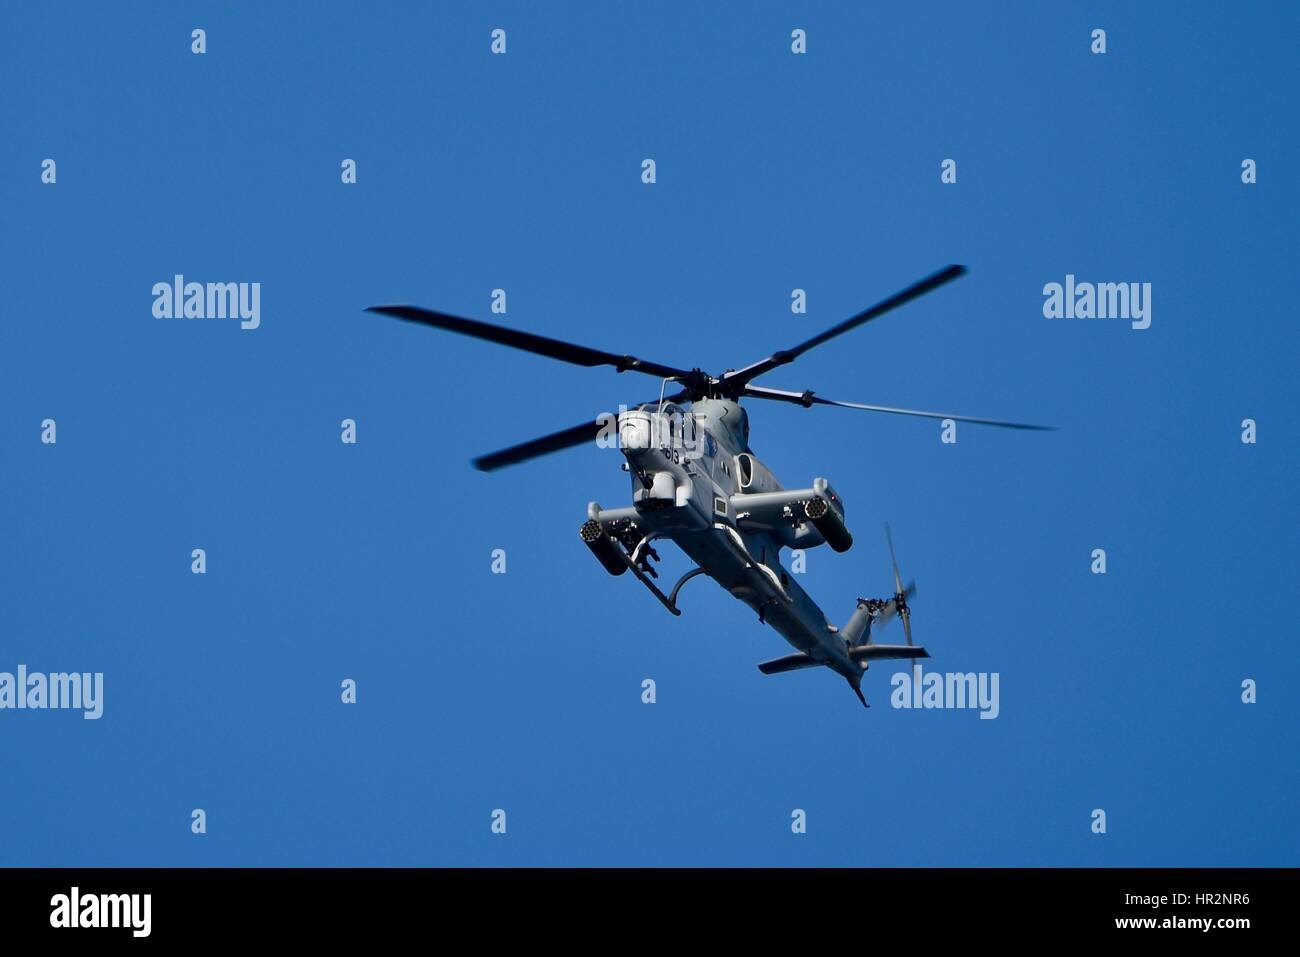 AH-1W Super Cobra attack helicopter used by US Marines, in flight over San Diego Harbor, California. Stock Photo